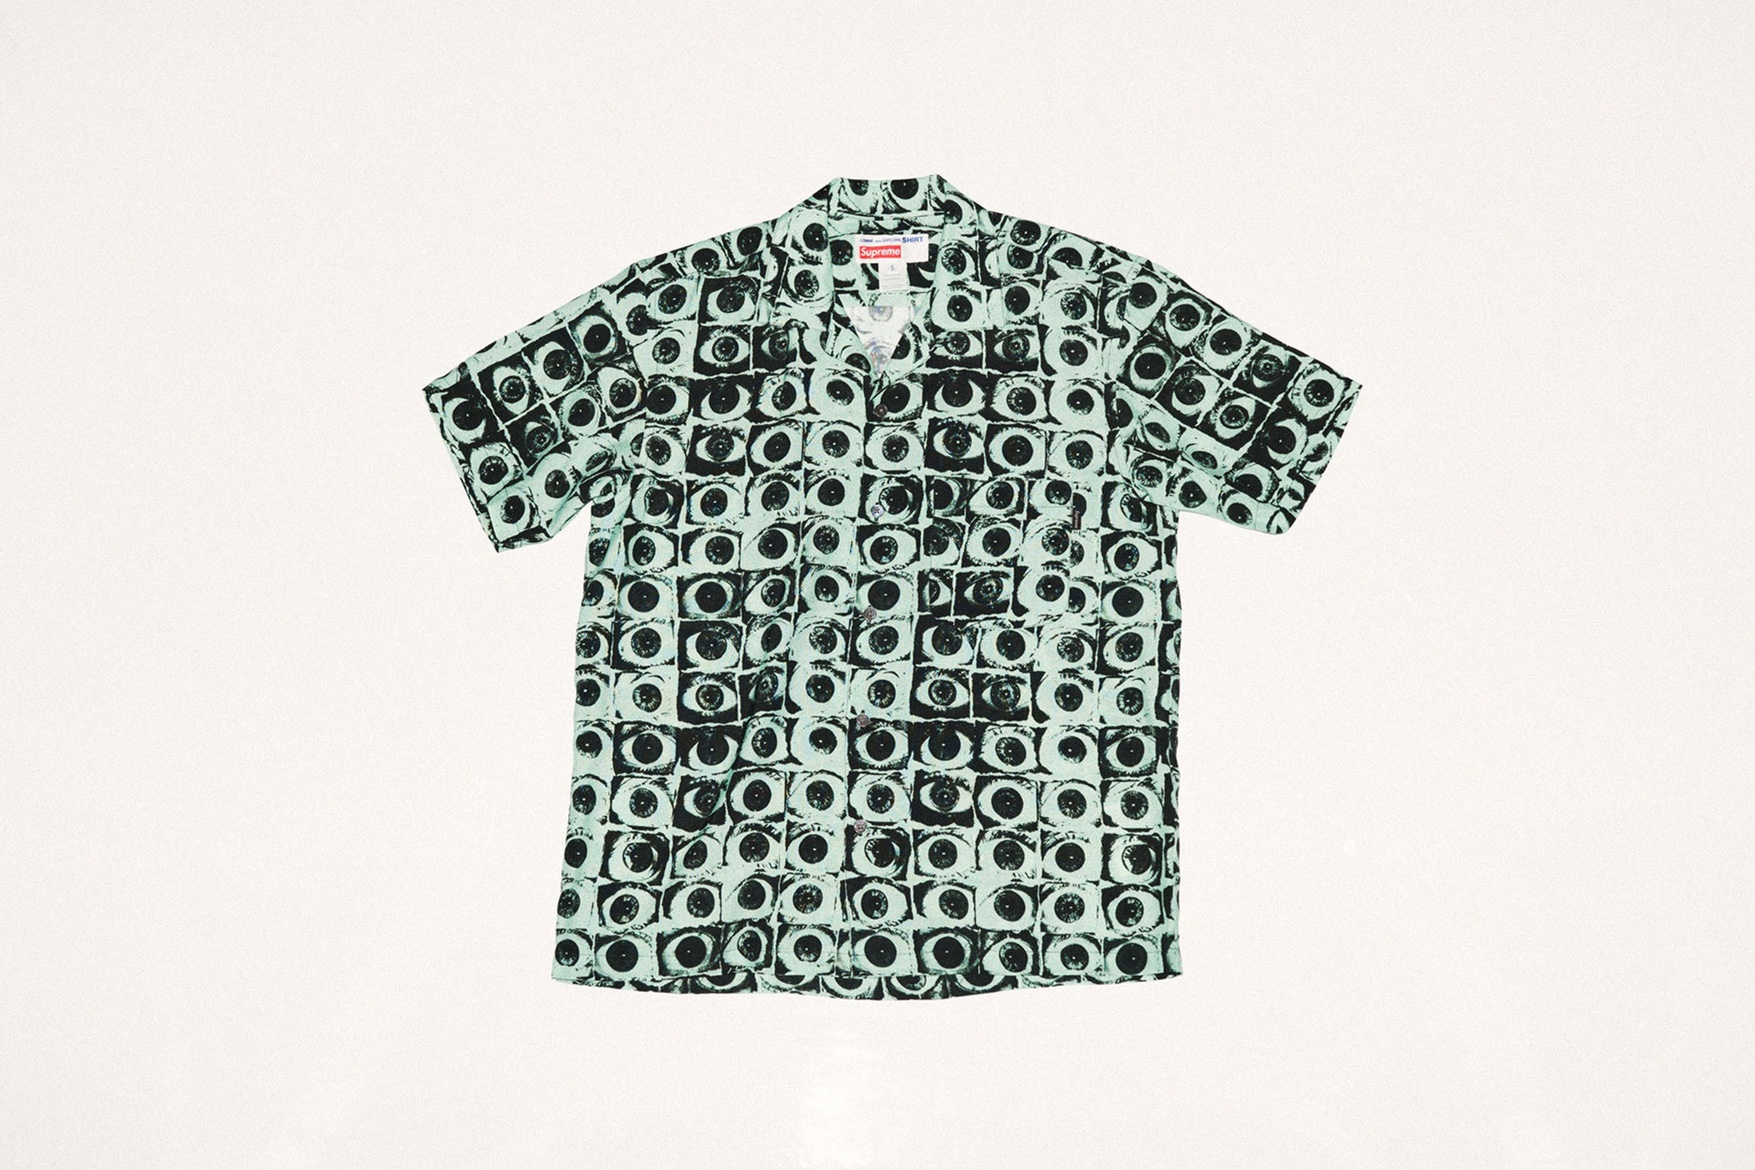 http---hypebeast.com-image-2017-04-supreme-comme-des-garcons-shirt-2017-spring-summer-collection-green-rayon-shirt-front-15.jpg